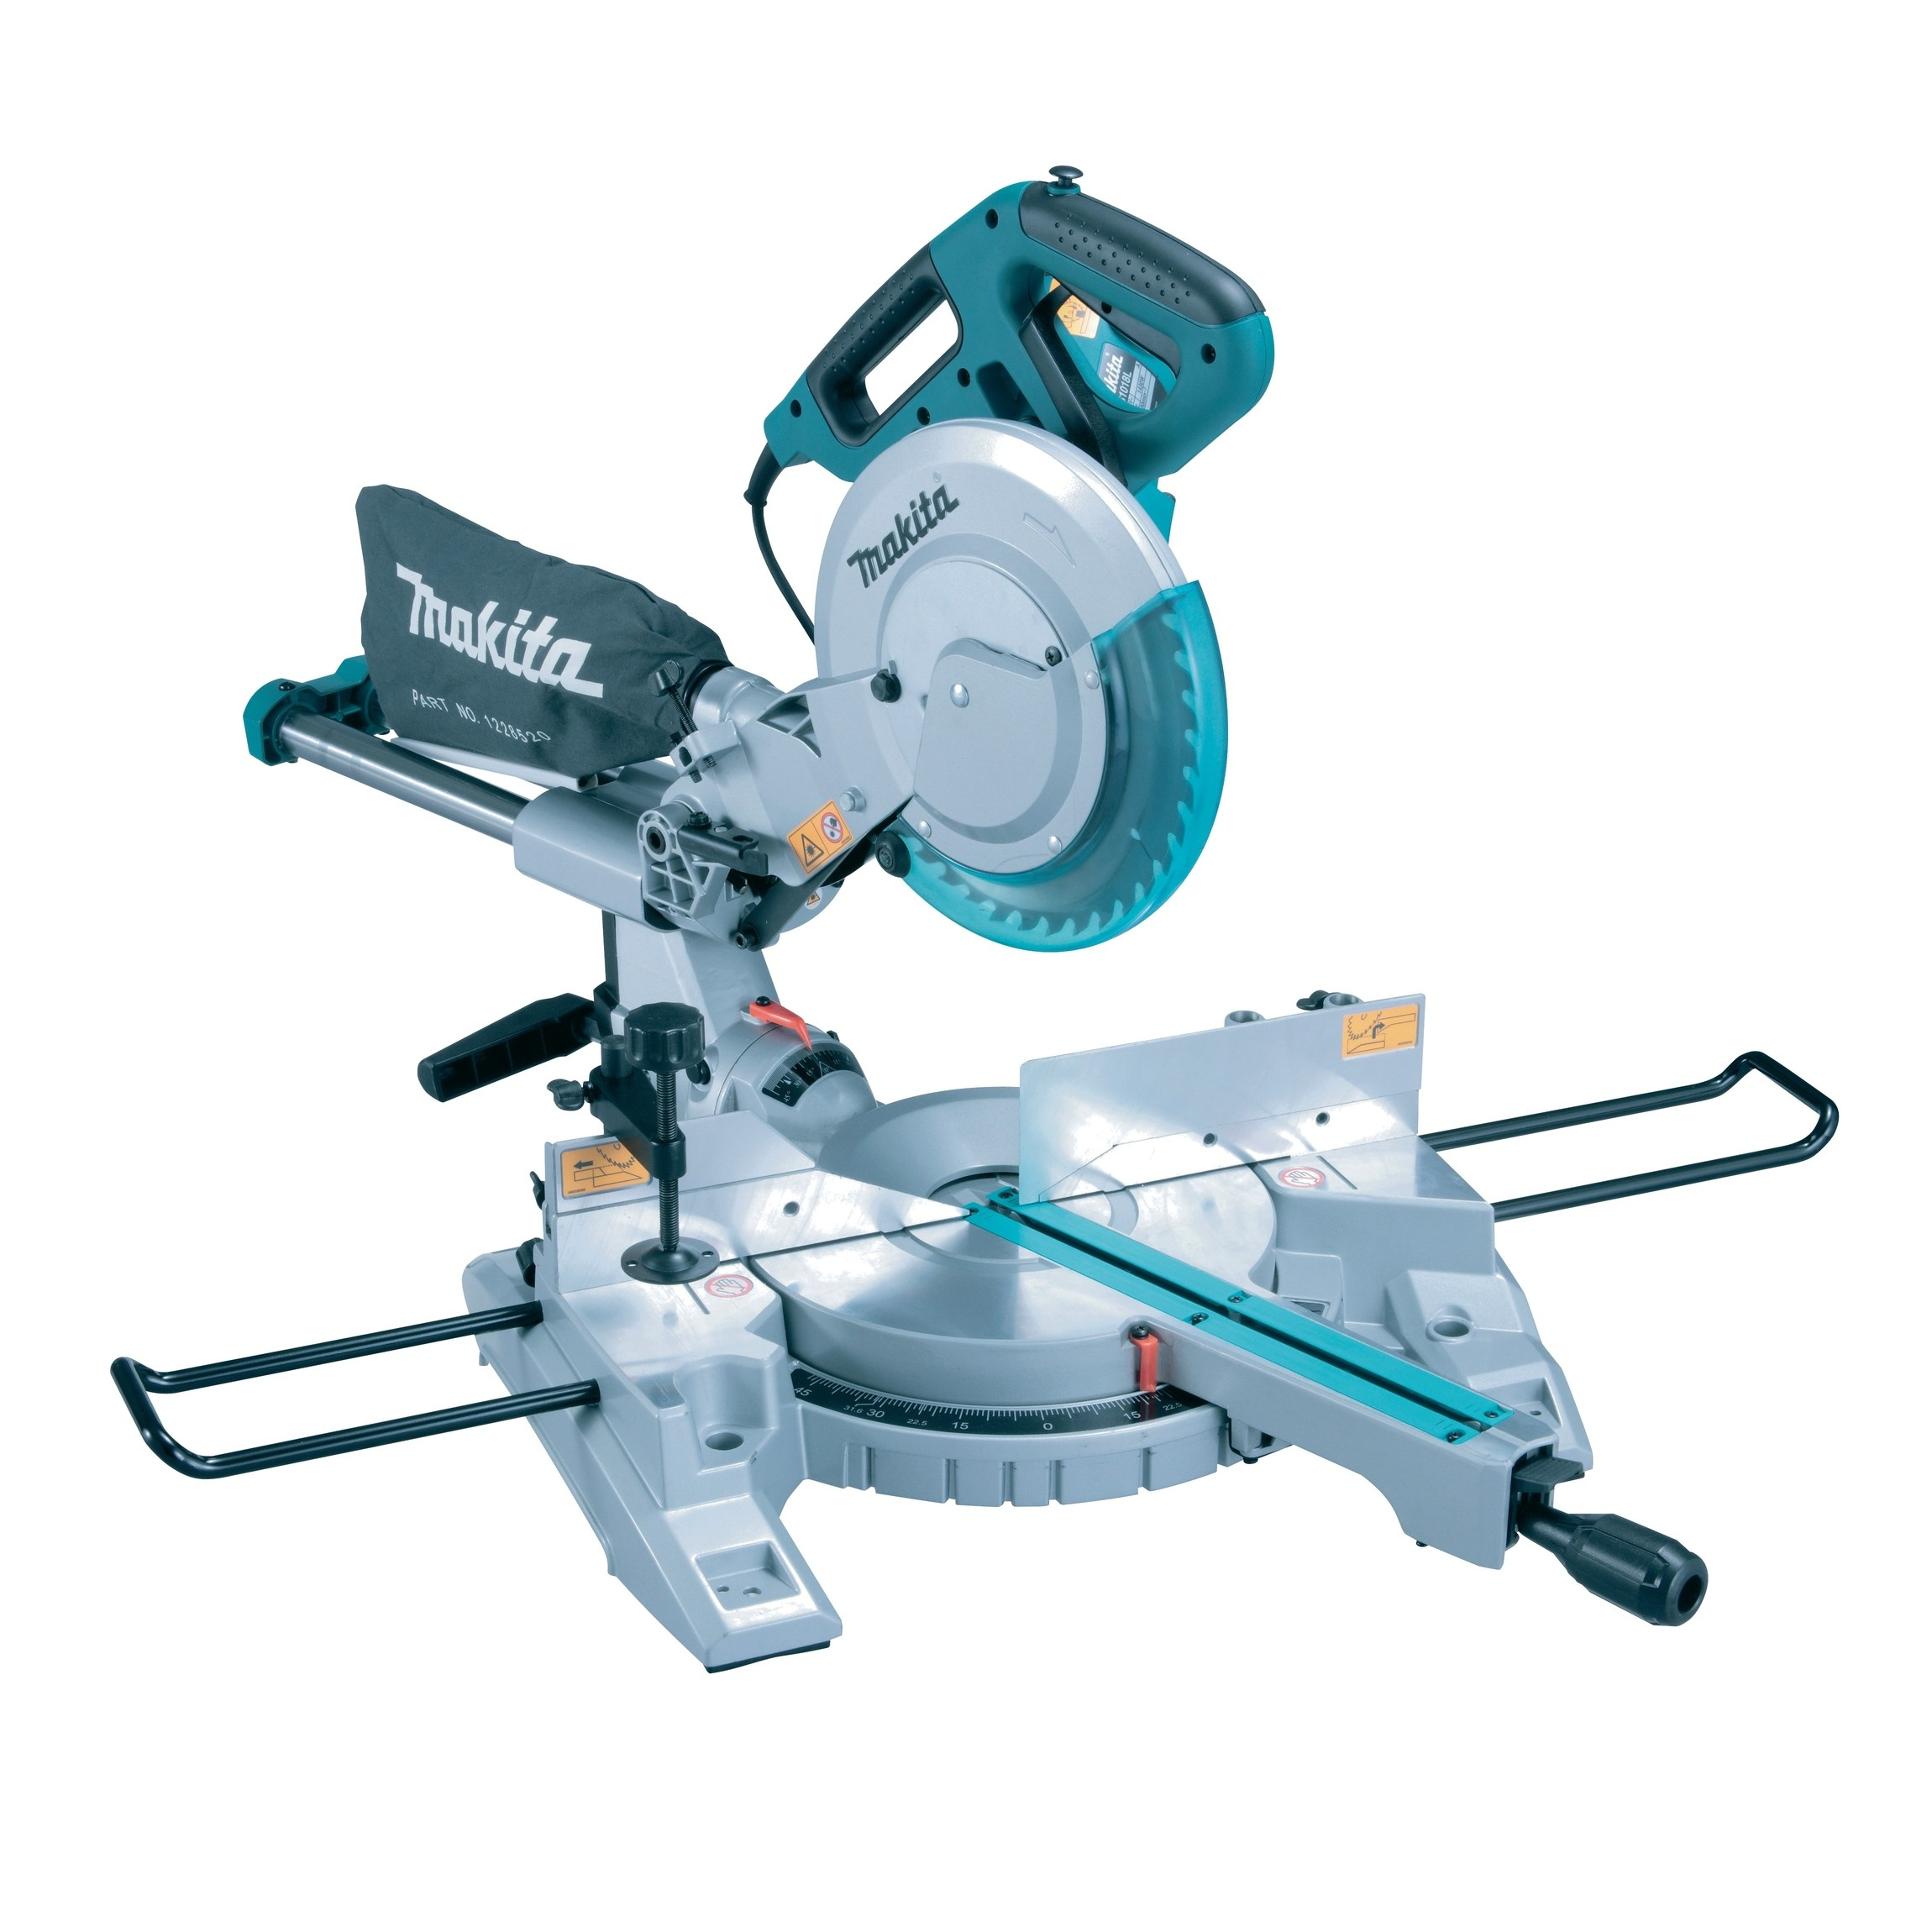 Makita ls1018l 260mm 10 slide compound mitre saw with laser makita ls1018l 260mm 10 slide compound mitre saw with laser guide greentooth Gallery